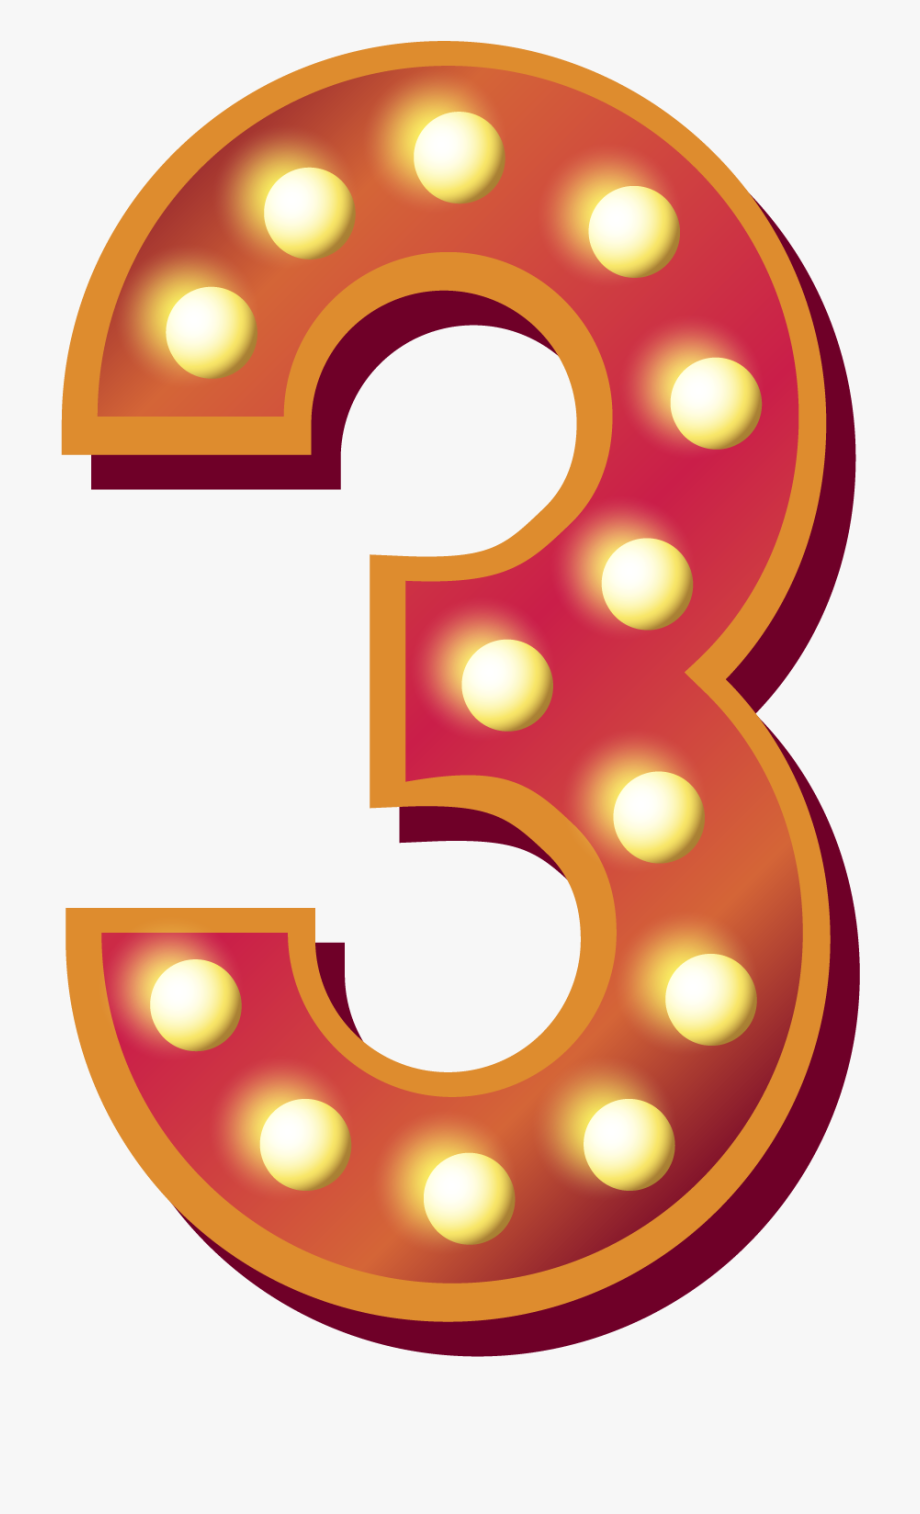 3 Number Png Download Free Image.